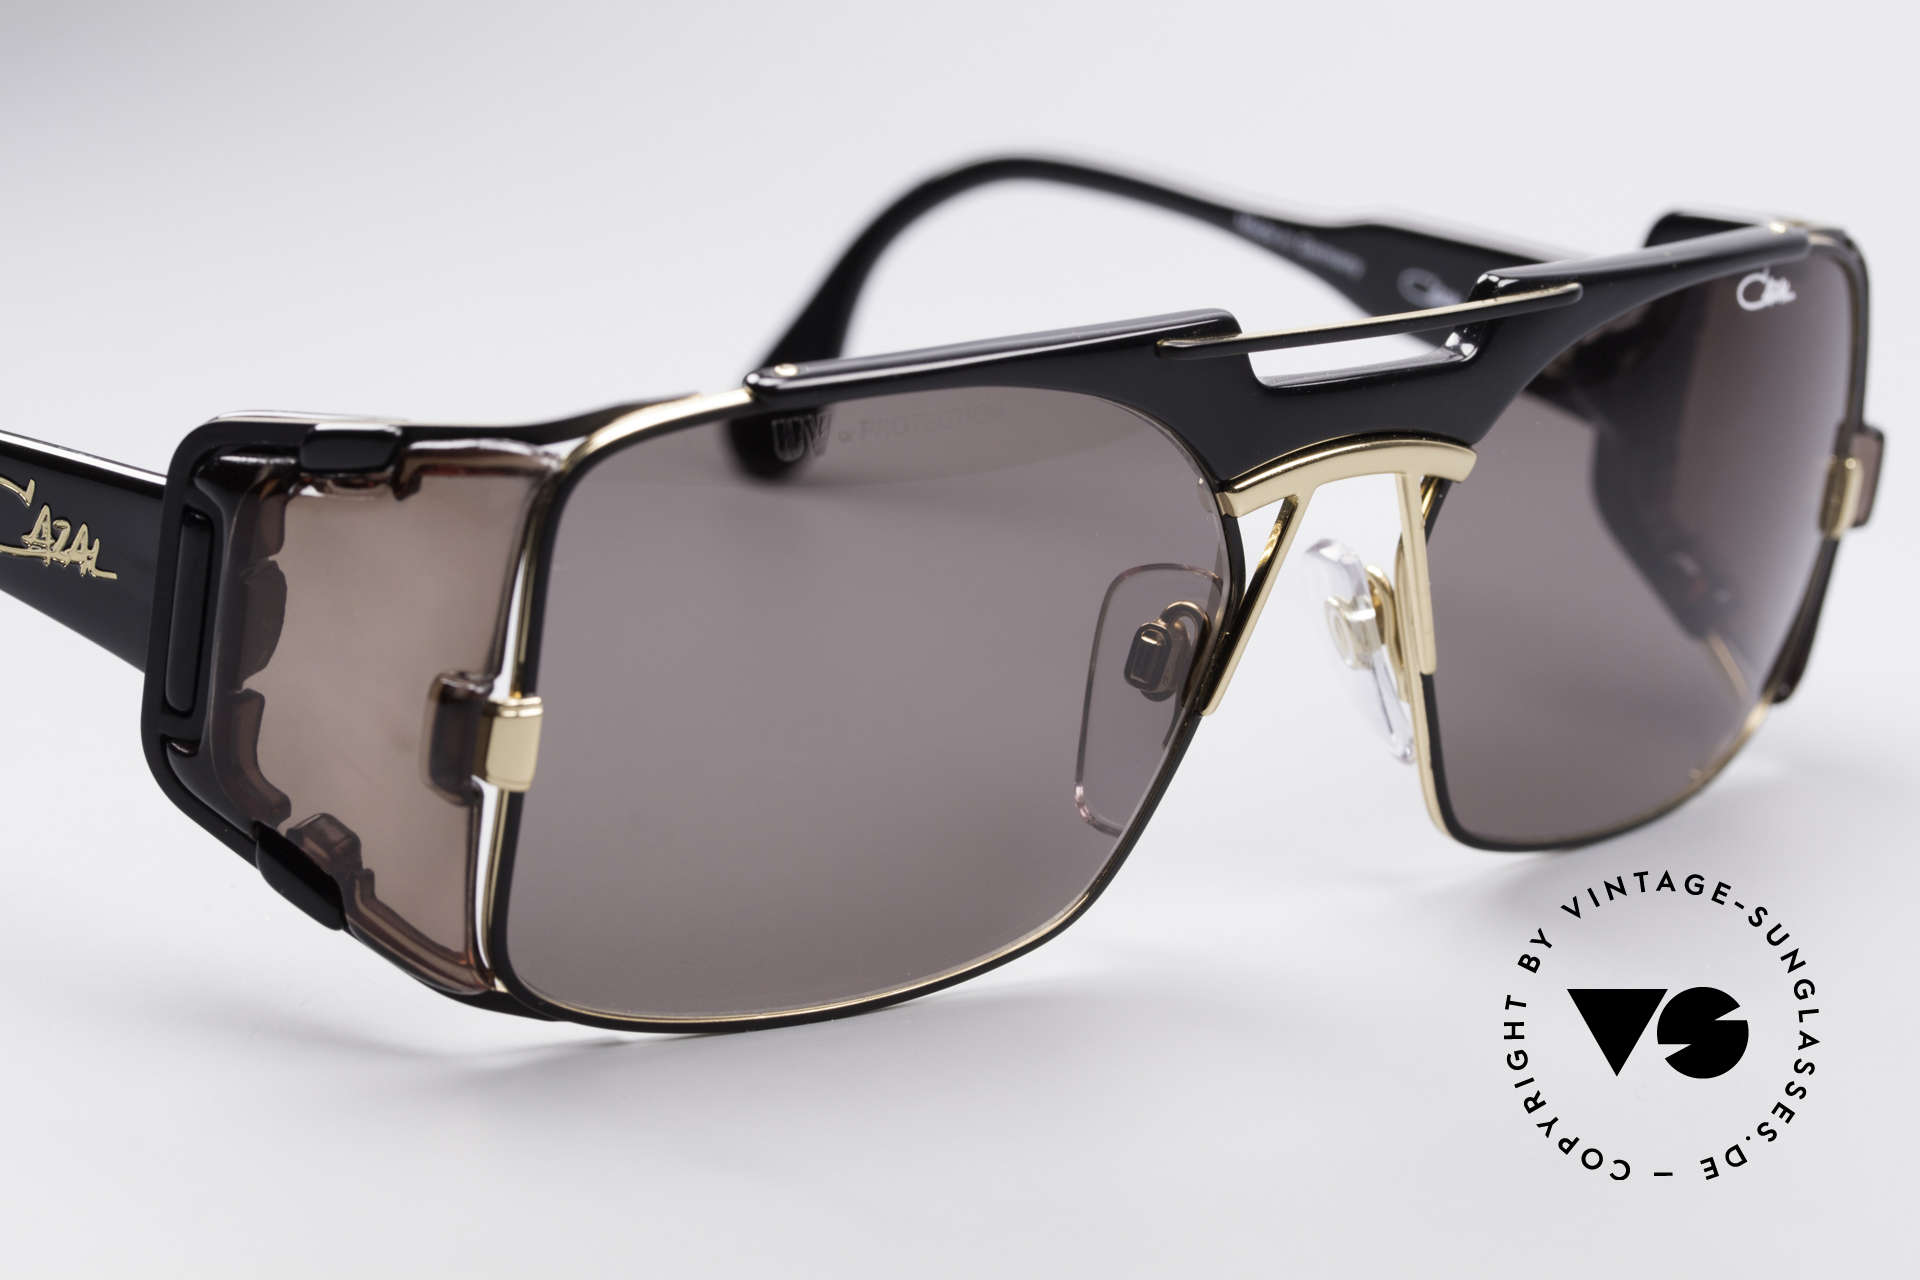 Cazal 963 True Vintage Hip Hop Shades, NO retro fashion, but the old original from app. 1989/90, Made for Men and Women